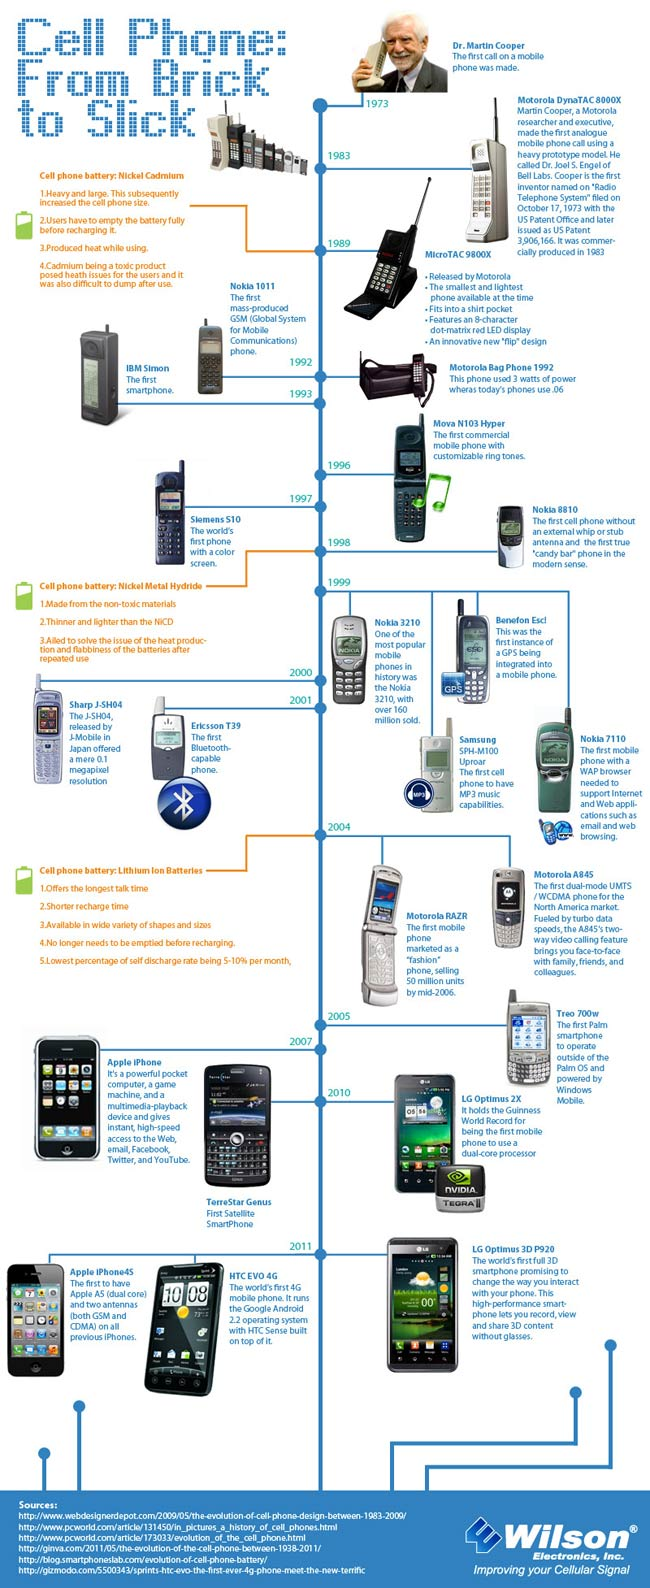 Infographic: Cell Phone History